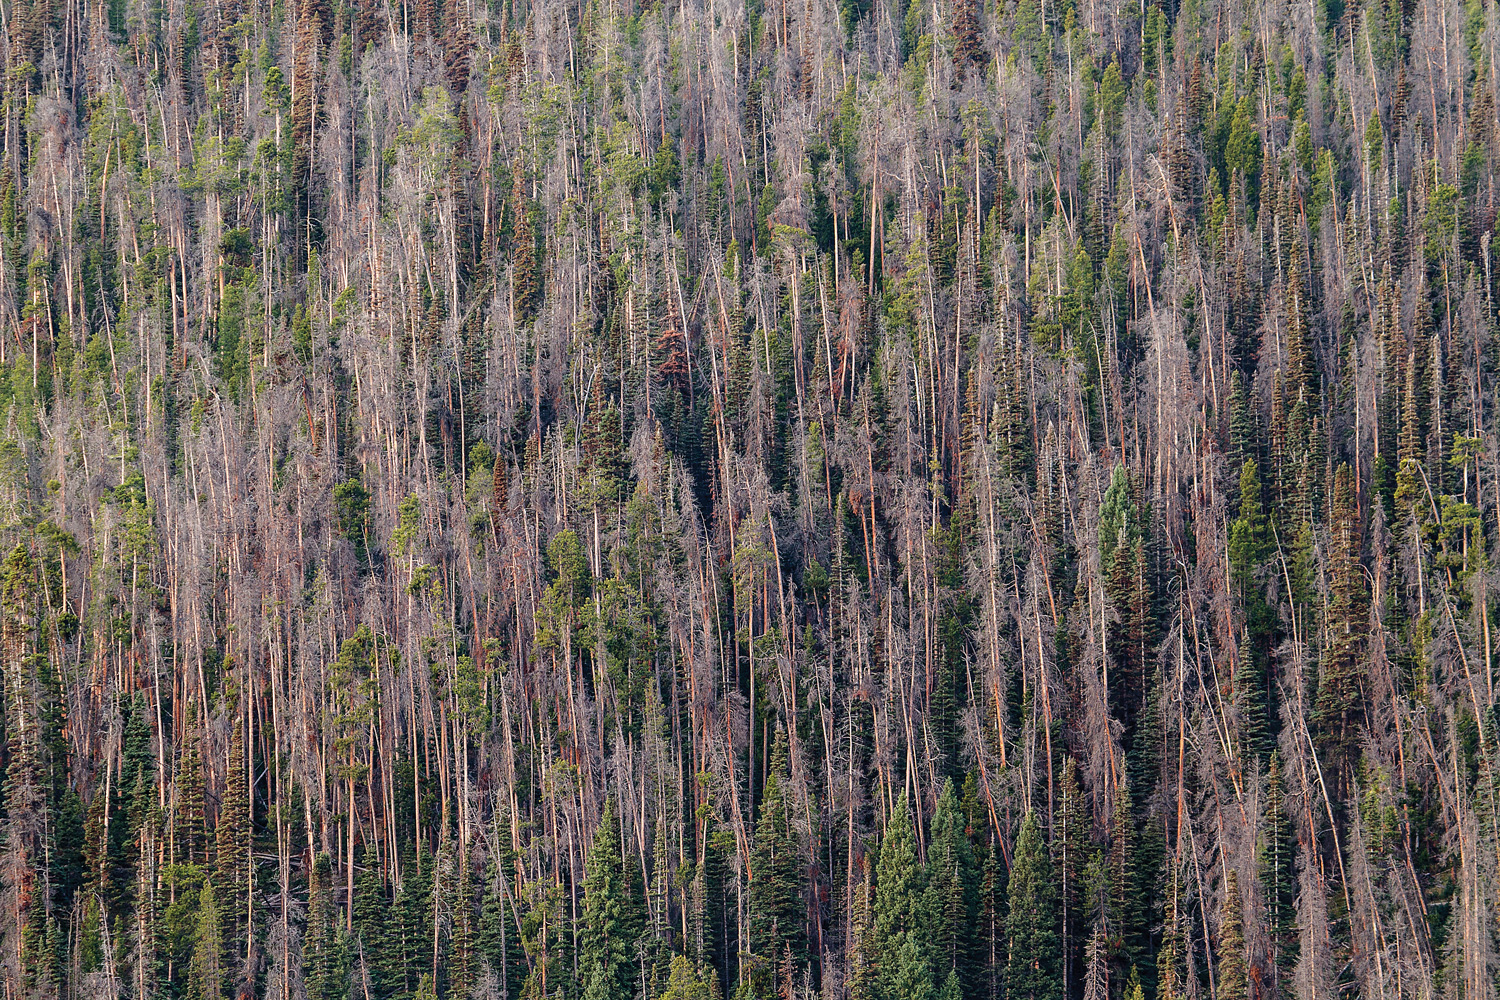 Beetle Killed Lodgepole Pines Cover A Hillside Among Living Engelmann Spruce And Subalpine Fir On The West Slope Of Snowy Mountains In Wyoming